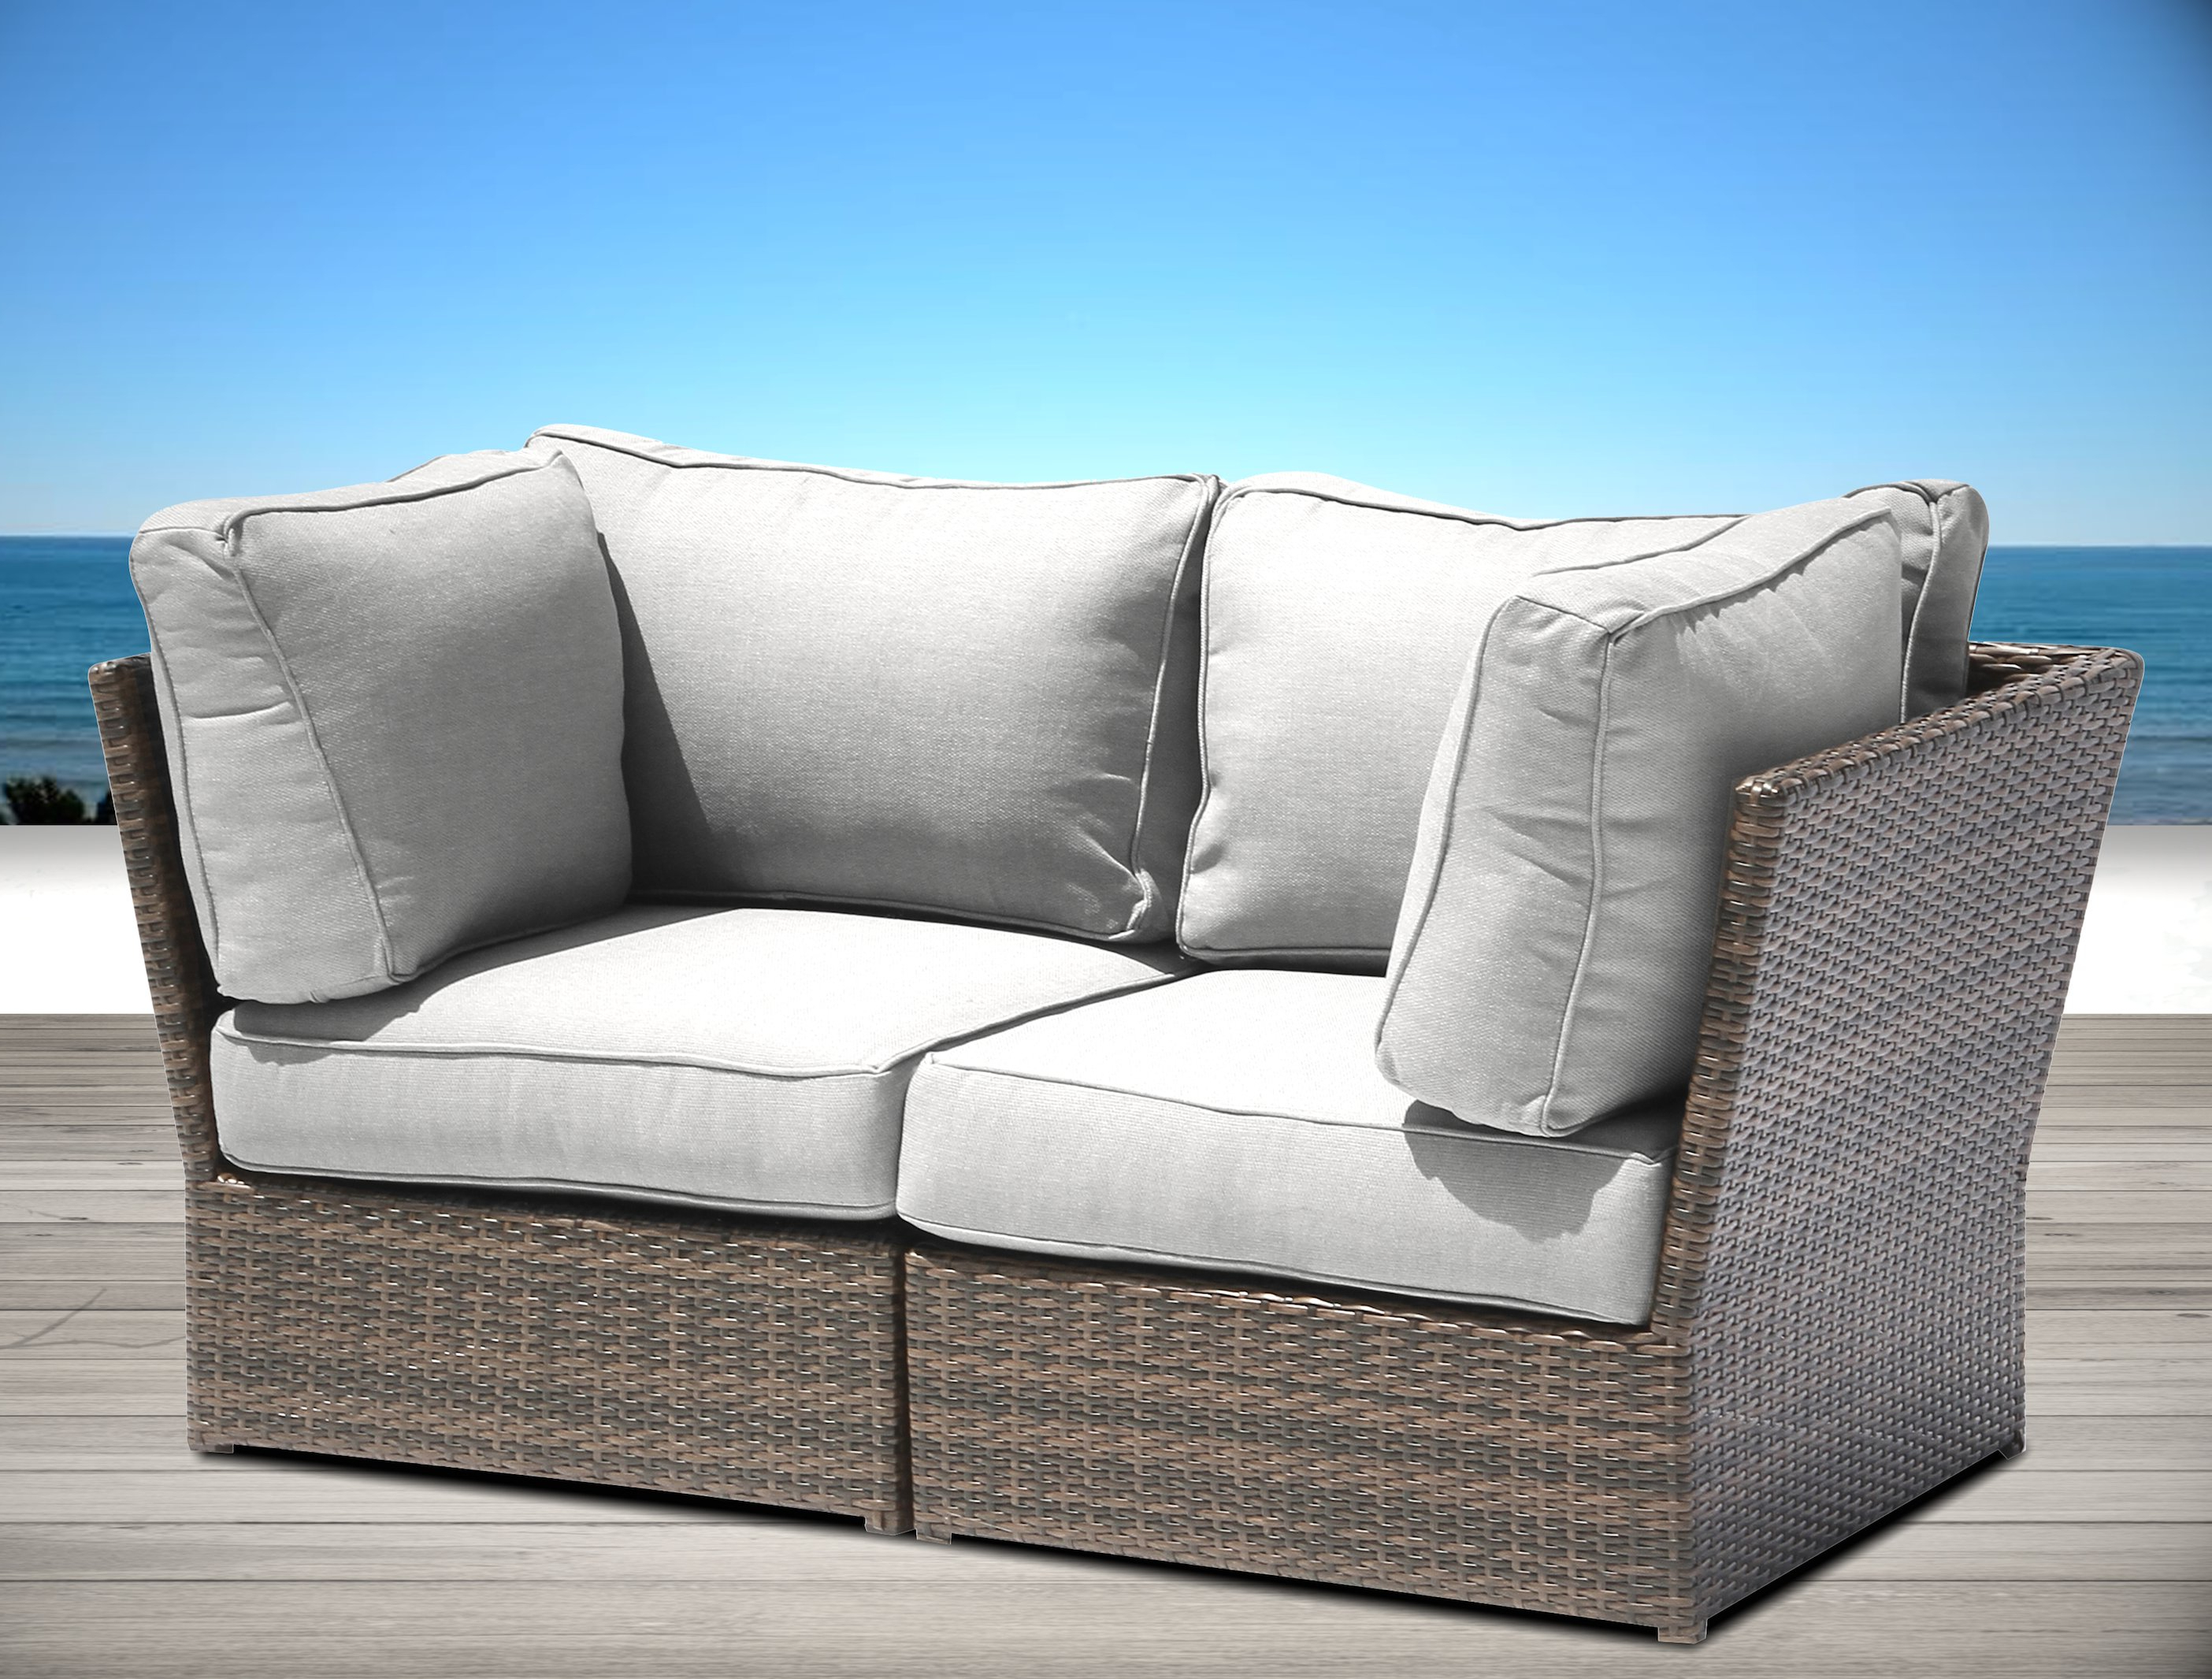 Brayden Studio Simmerman Loveseat With Cushions Regarding Widely Used Castelli Loveseats With Cushions (View 11 of 20)